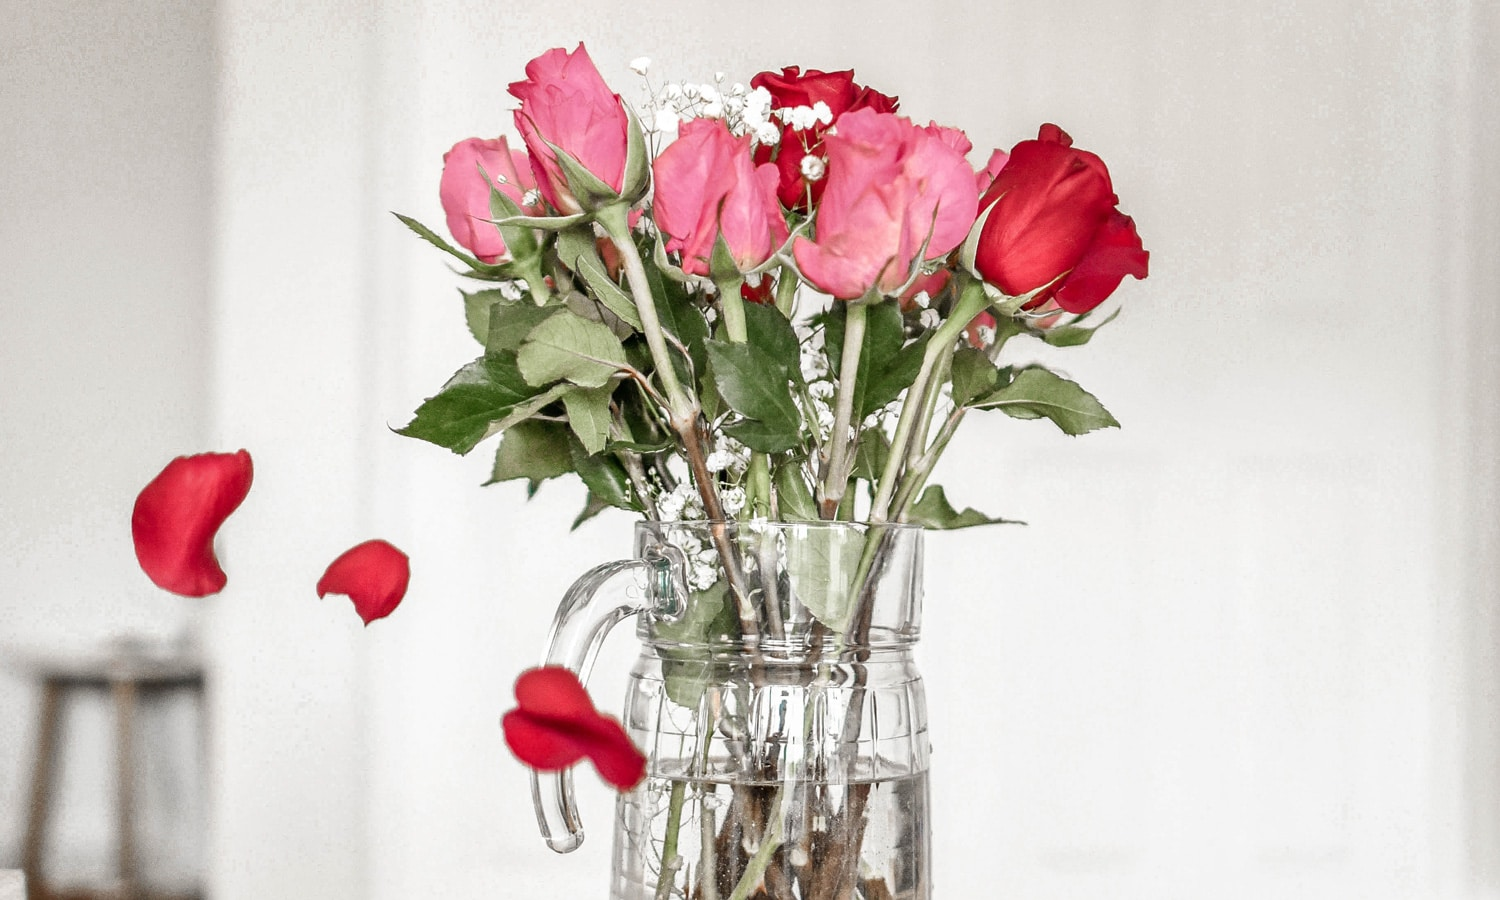 5 Last Minute Ideas For Valentine's Day Presents